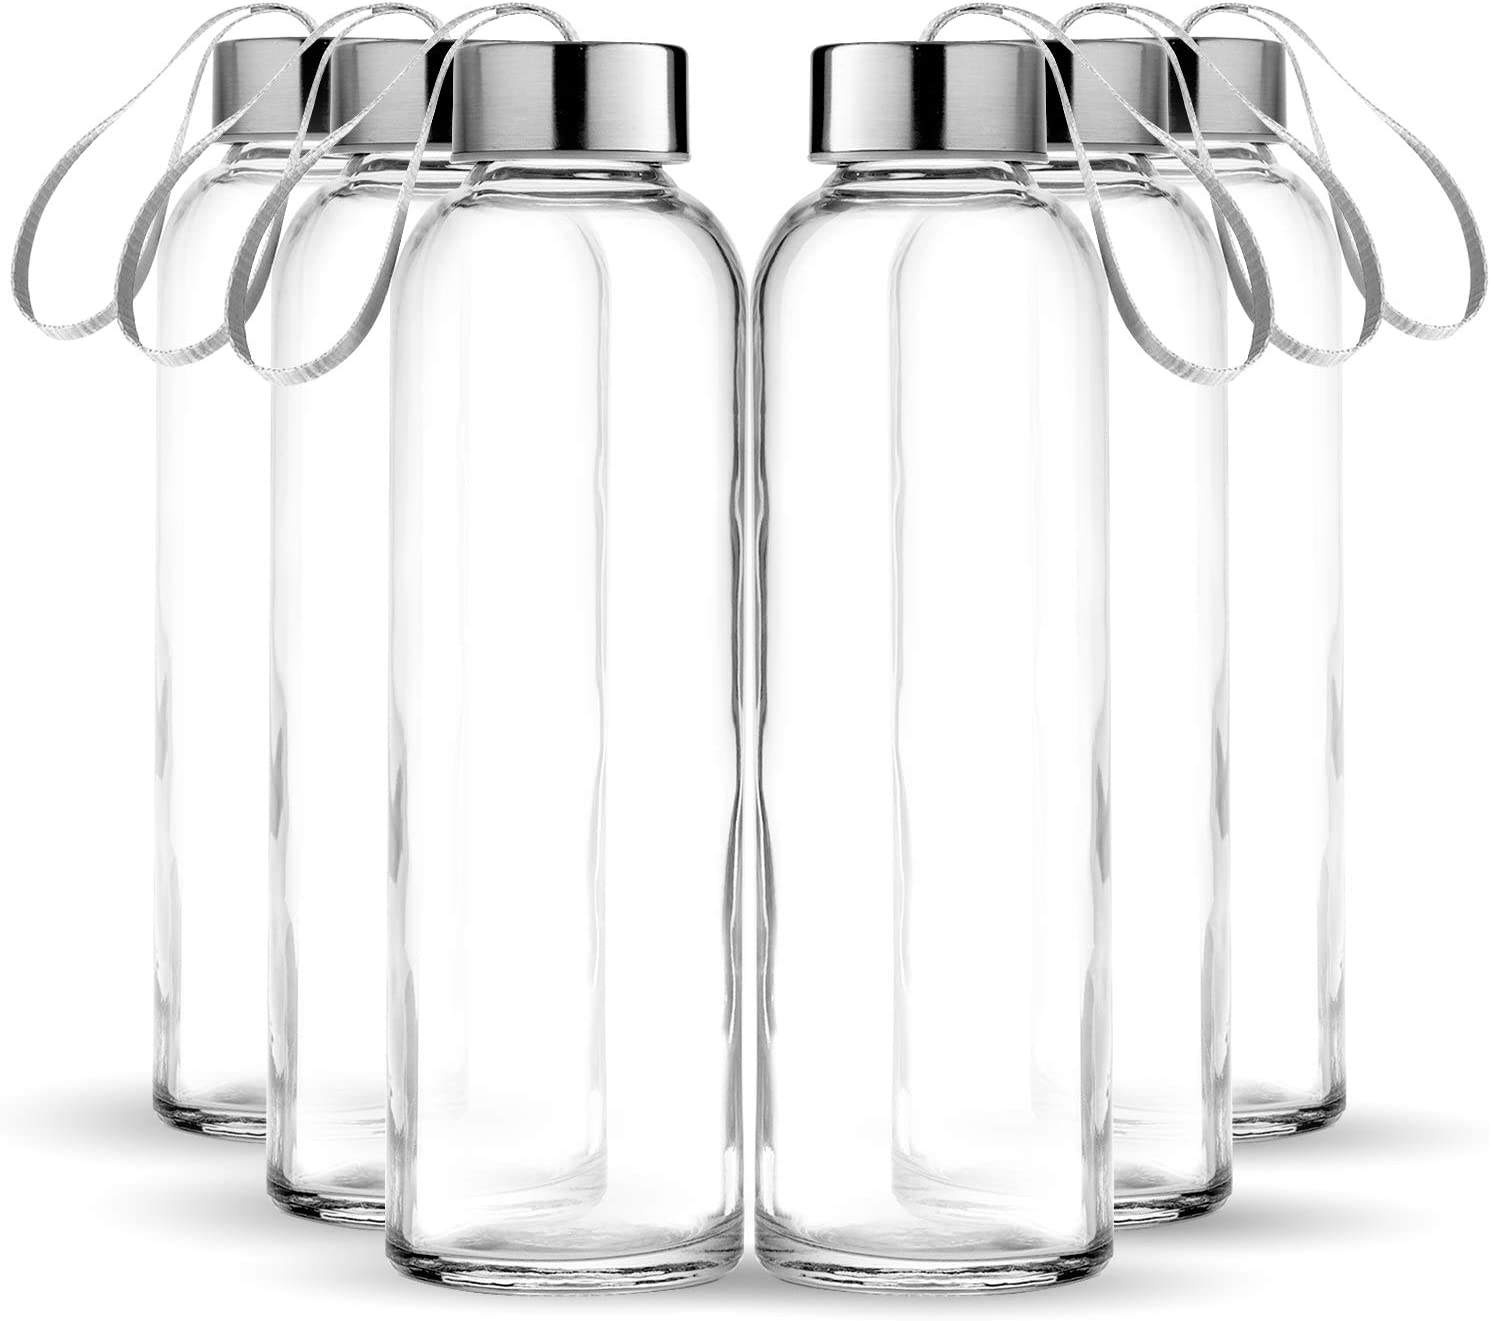 Chef's Star Glass water Bottle 6 Pack 16oz Bottles For Beverage and Juice, Stainless Steel Caps with Carrying Loop - Including 6 Black Nylon Protection Sleeve